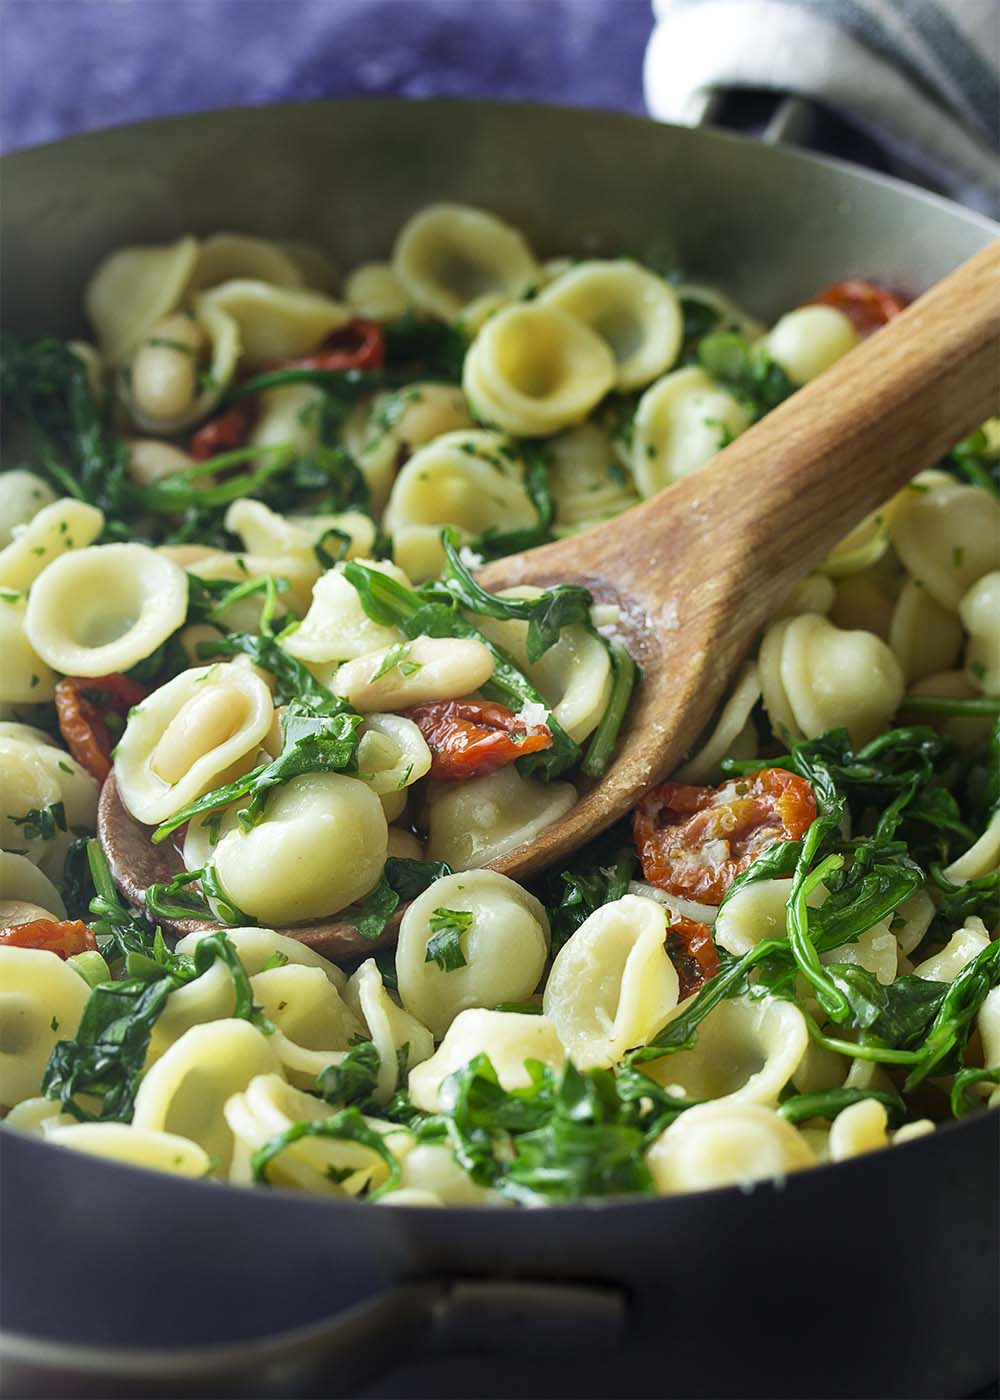 Pasta with white beans, arugula, and tomatoes in a skillet. A wood serving spoon scooping up a portion.